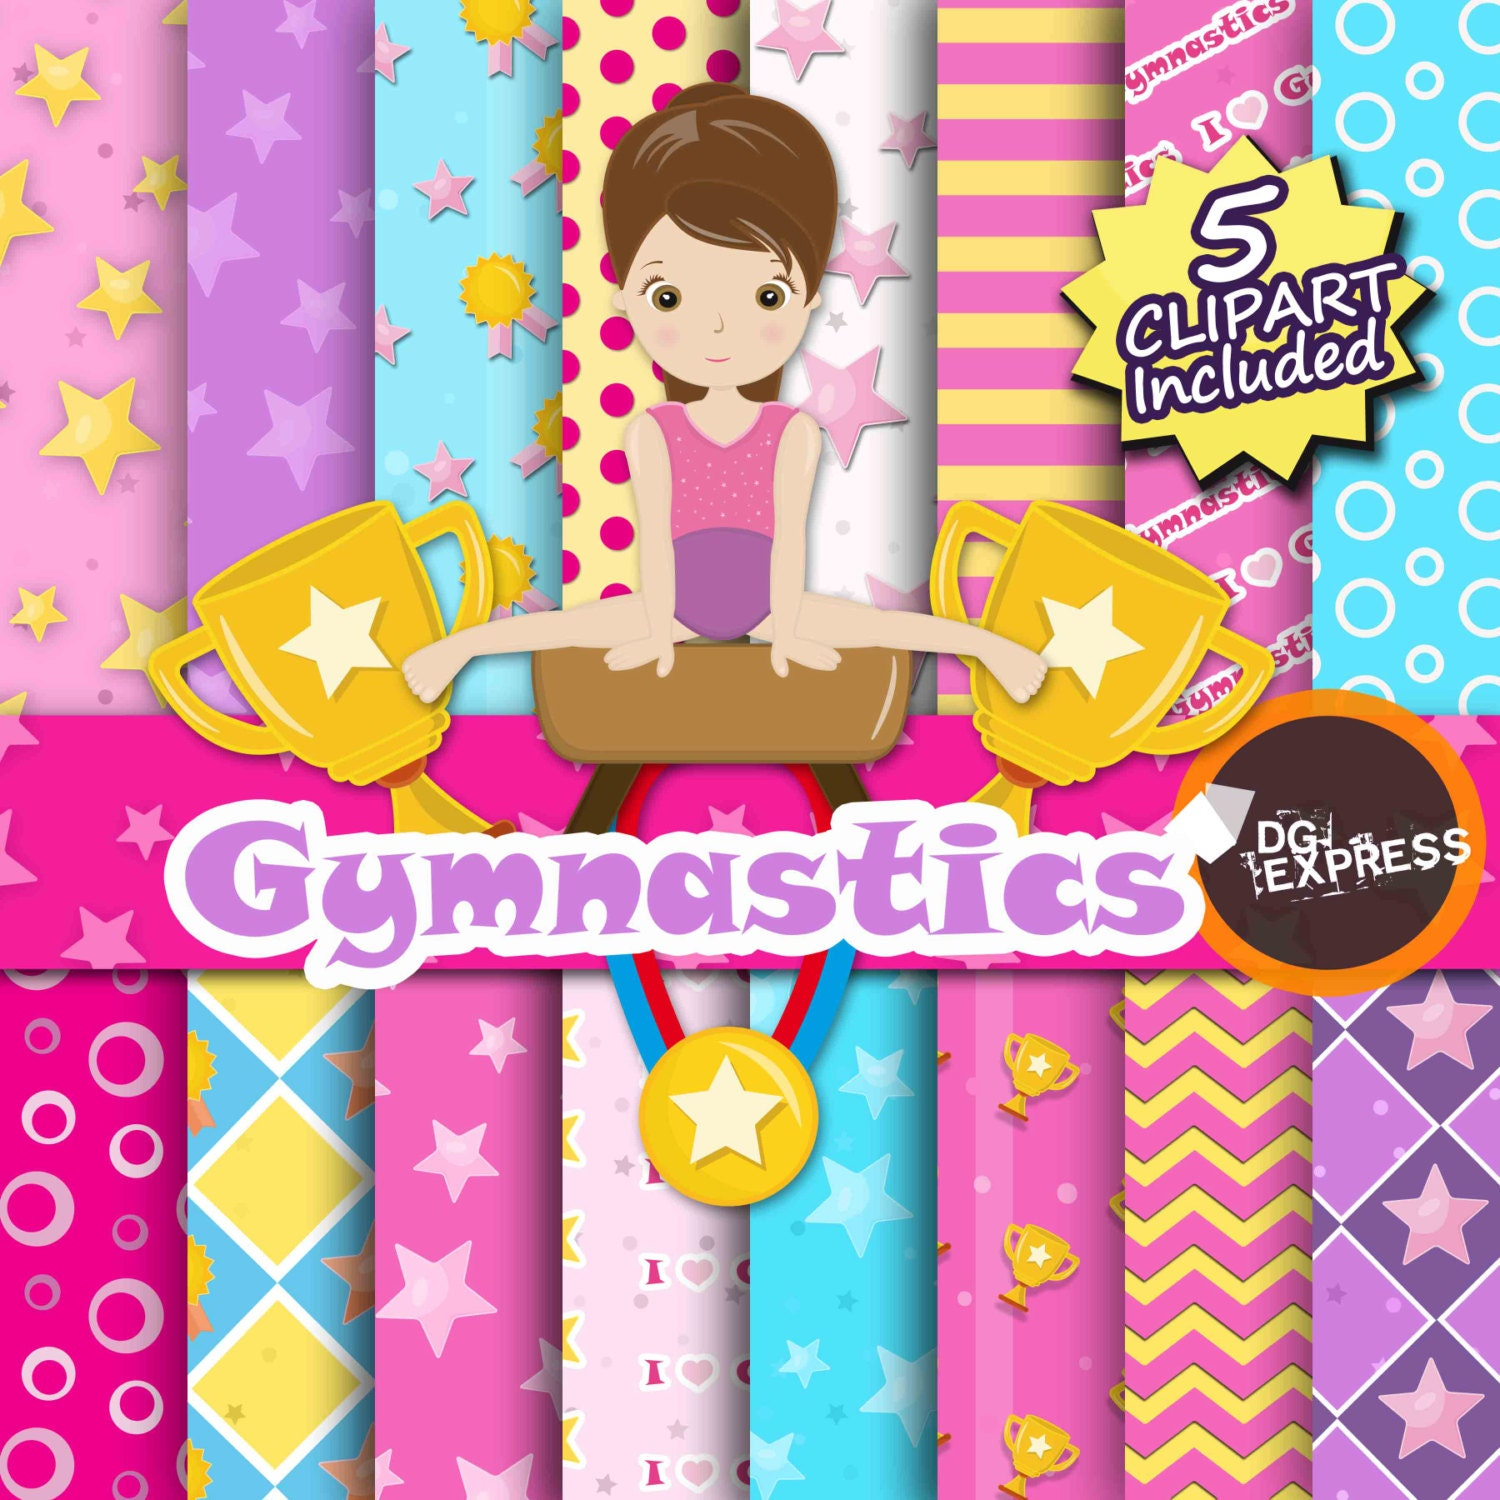 essay on gymnastics Find gymnastics uneven bars stock images in hd and millions of other royalty-free stock photos, illustrations, and vectors in the shutterstock collection thousands of new, high-quality pictures added every day.